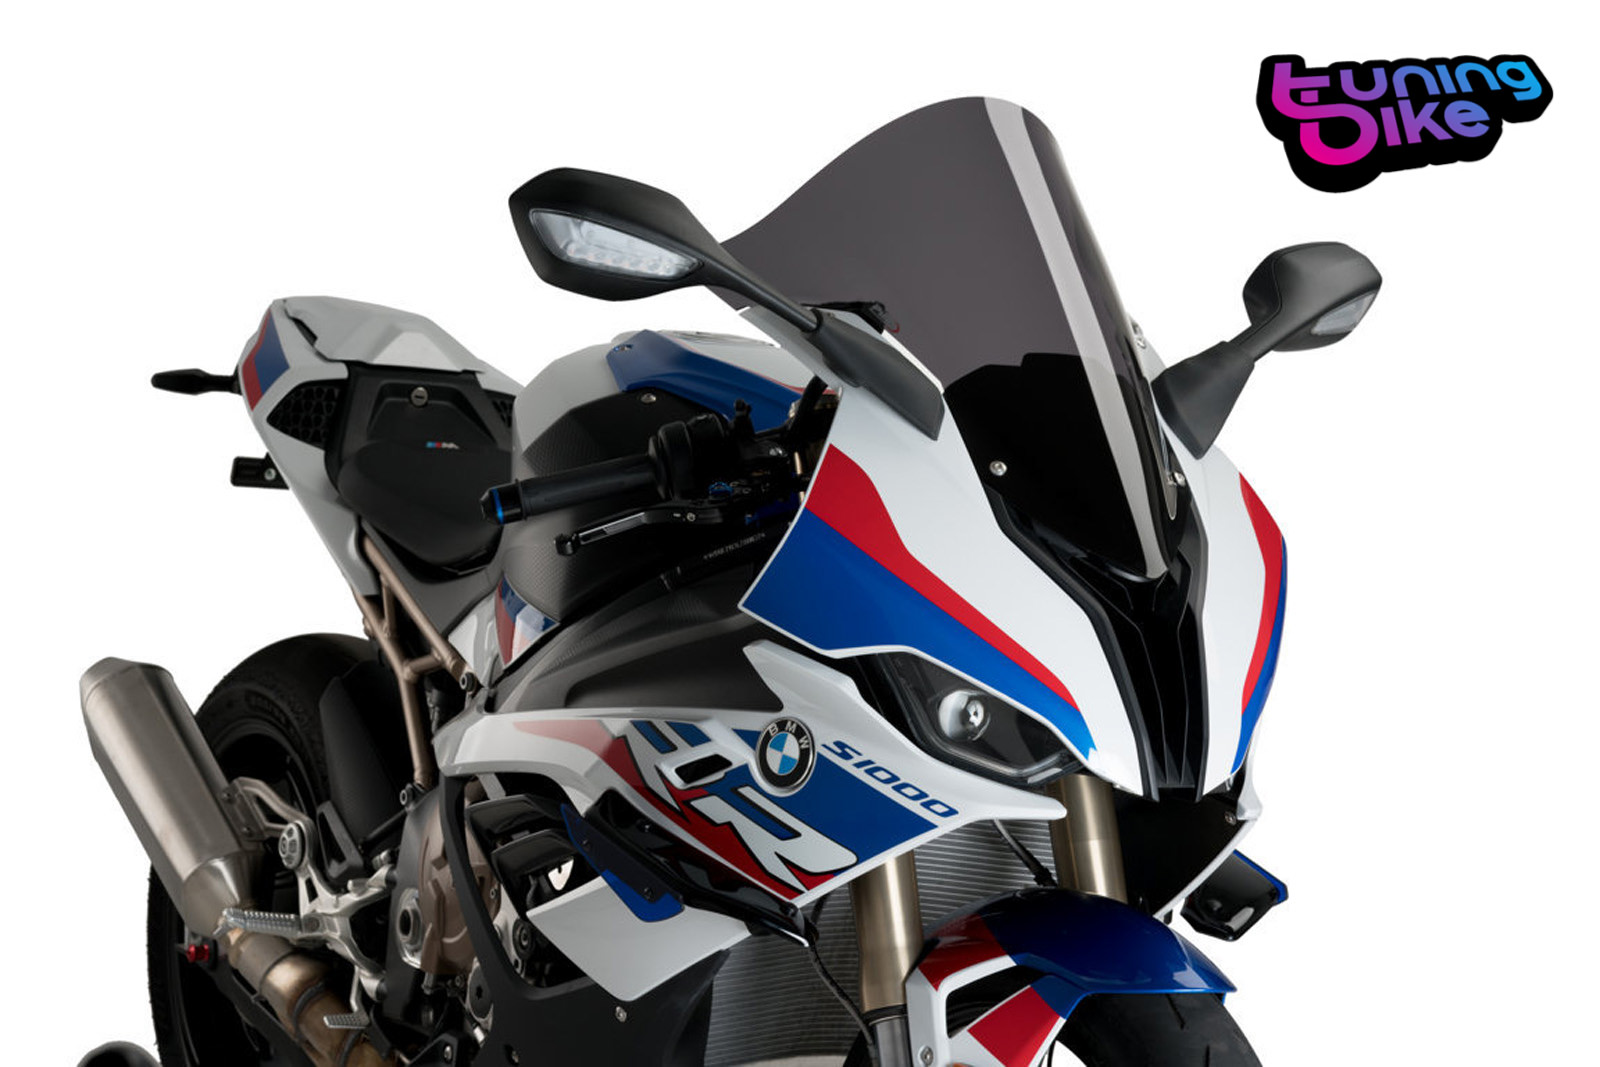 2020 BMW S1000Rr Price, Design and Review